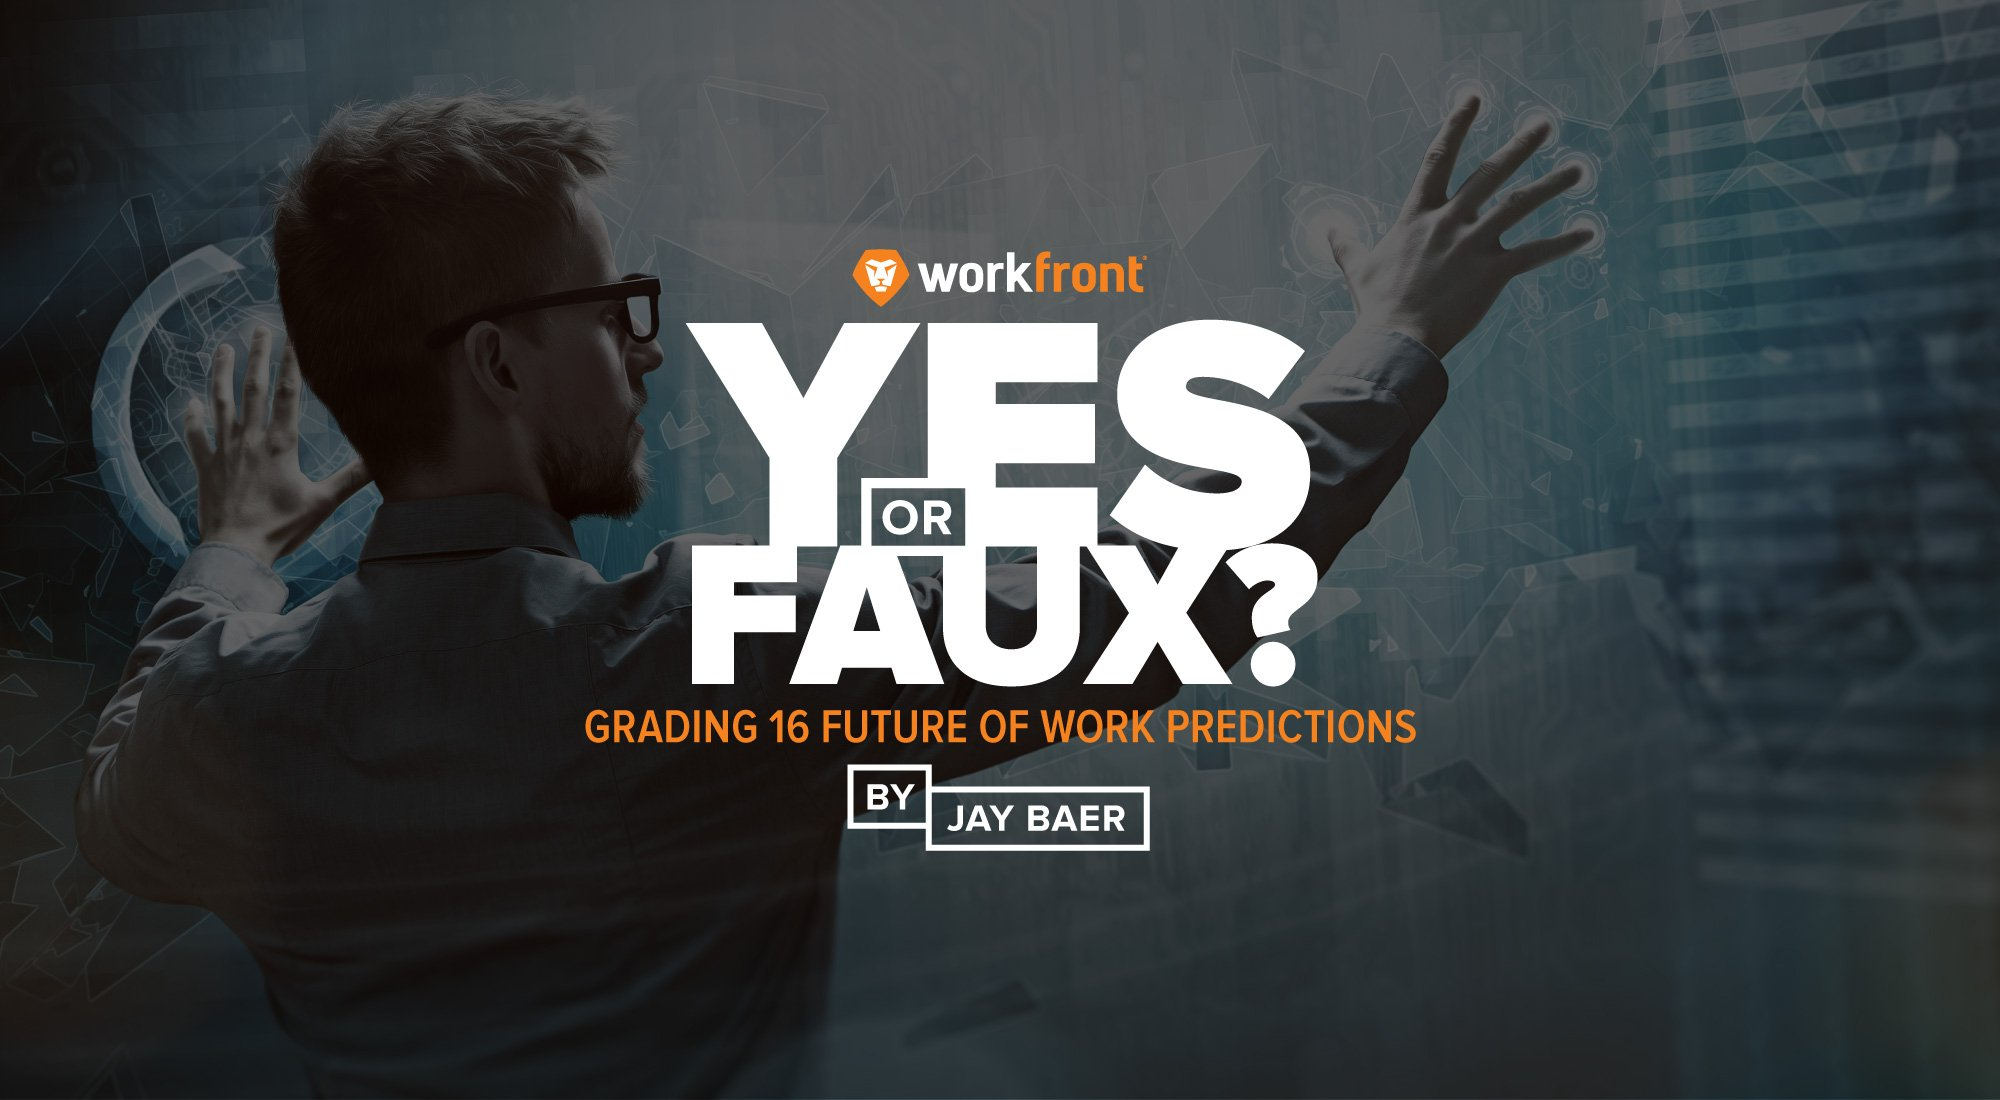 Yes or Faux—Grading 16 Future of Work Predictions